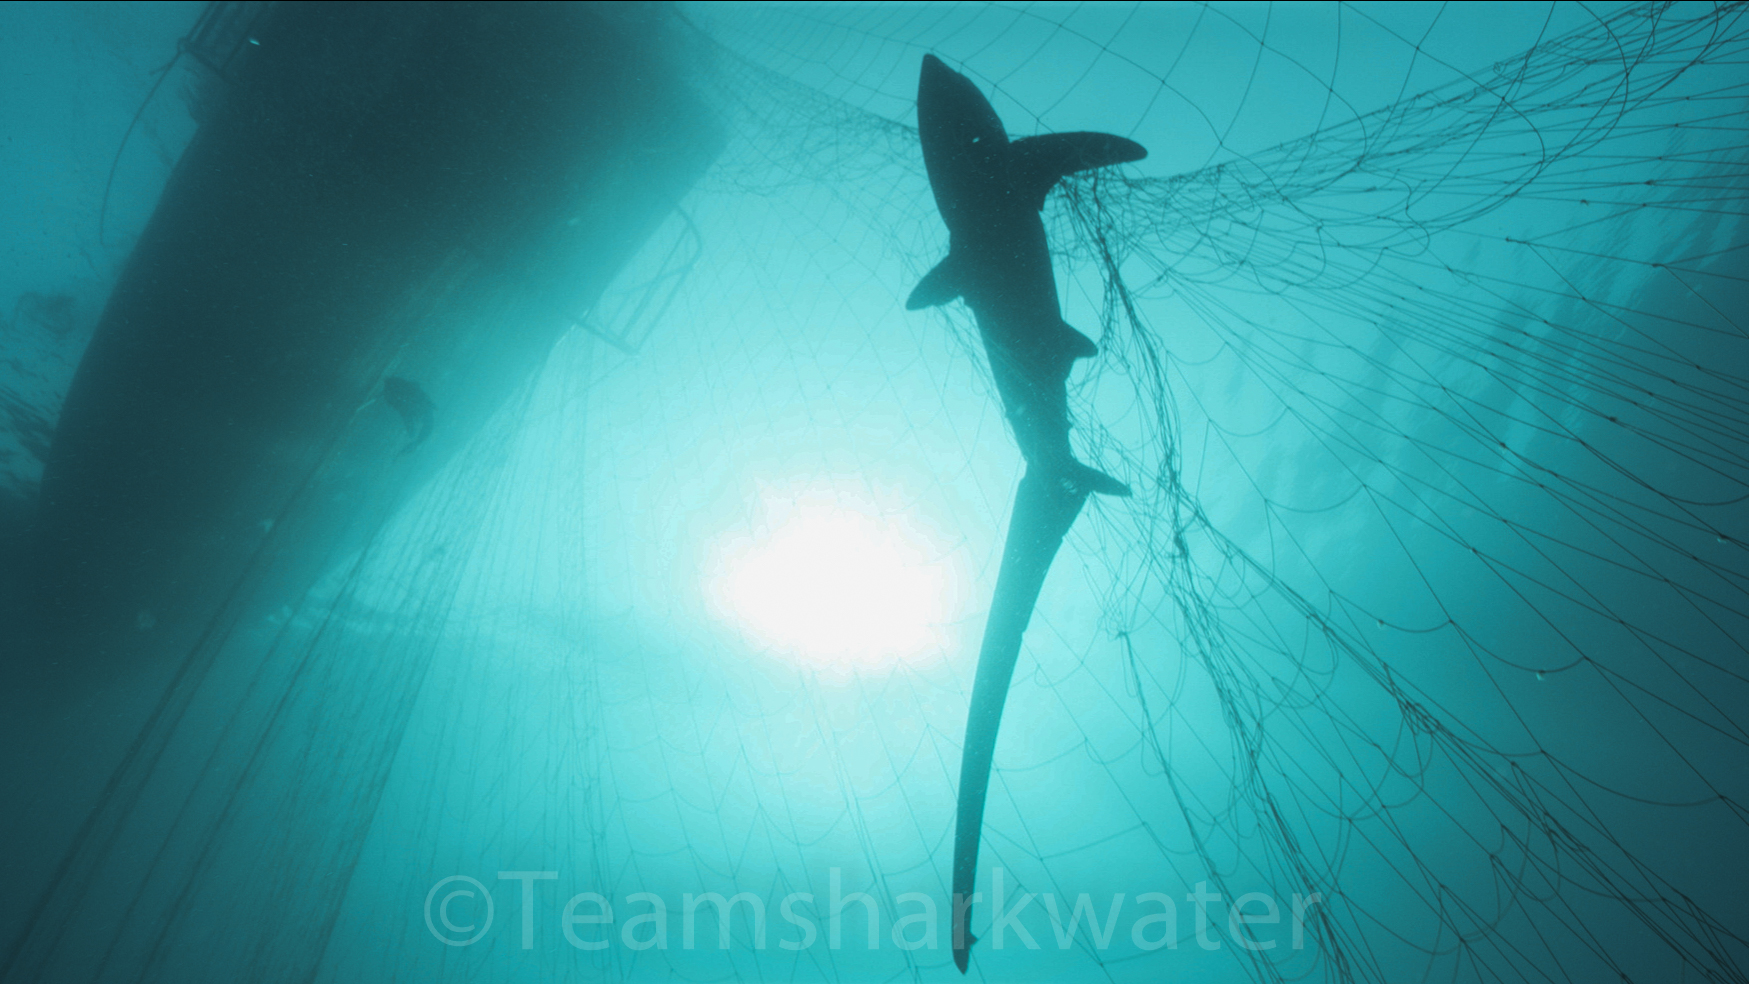 Shocking Undercover Investigations of Commercial Seafood Industry Expose Cruelty of Driftnets